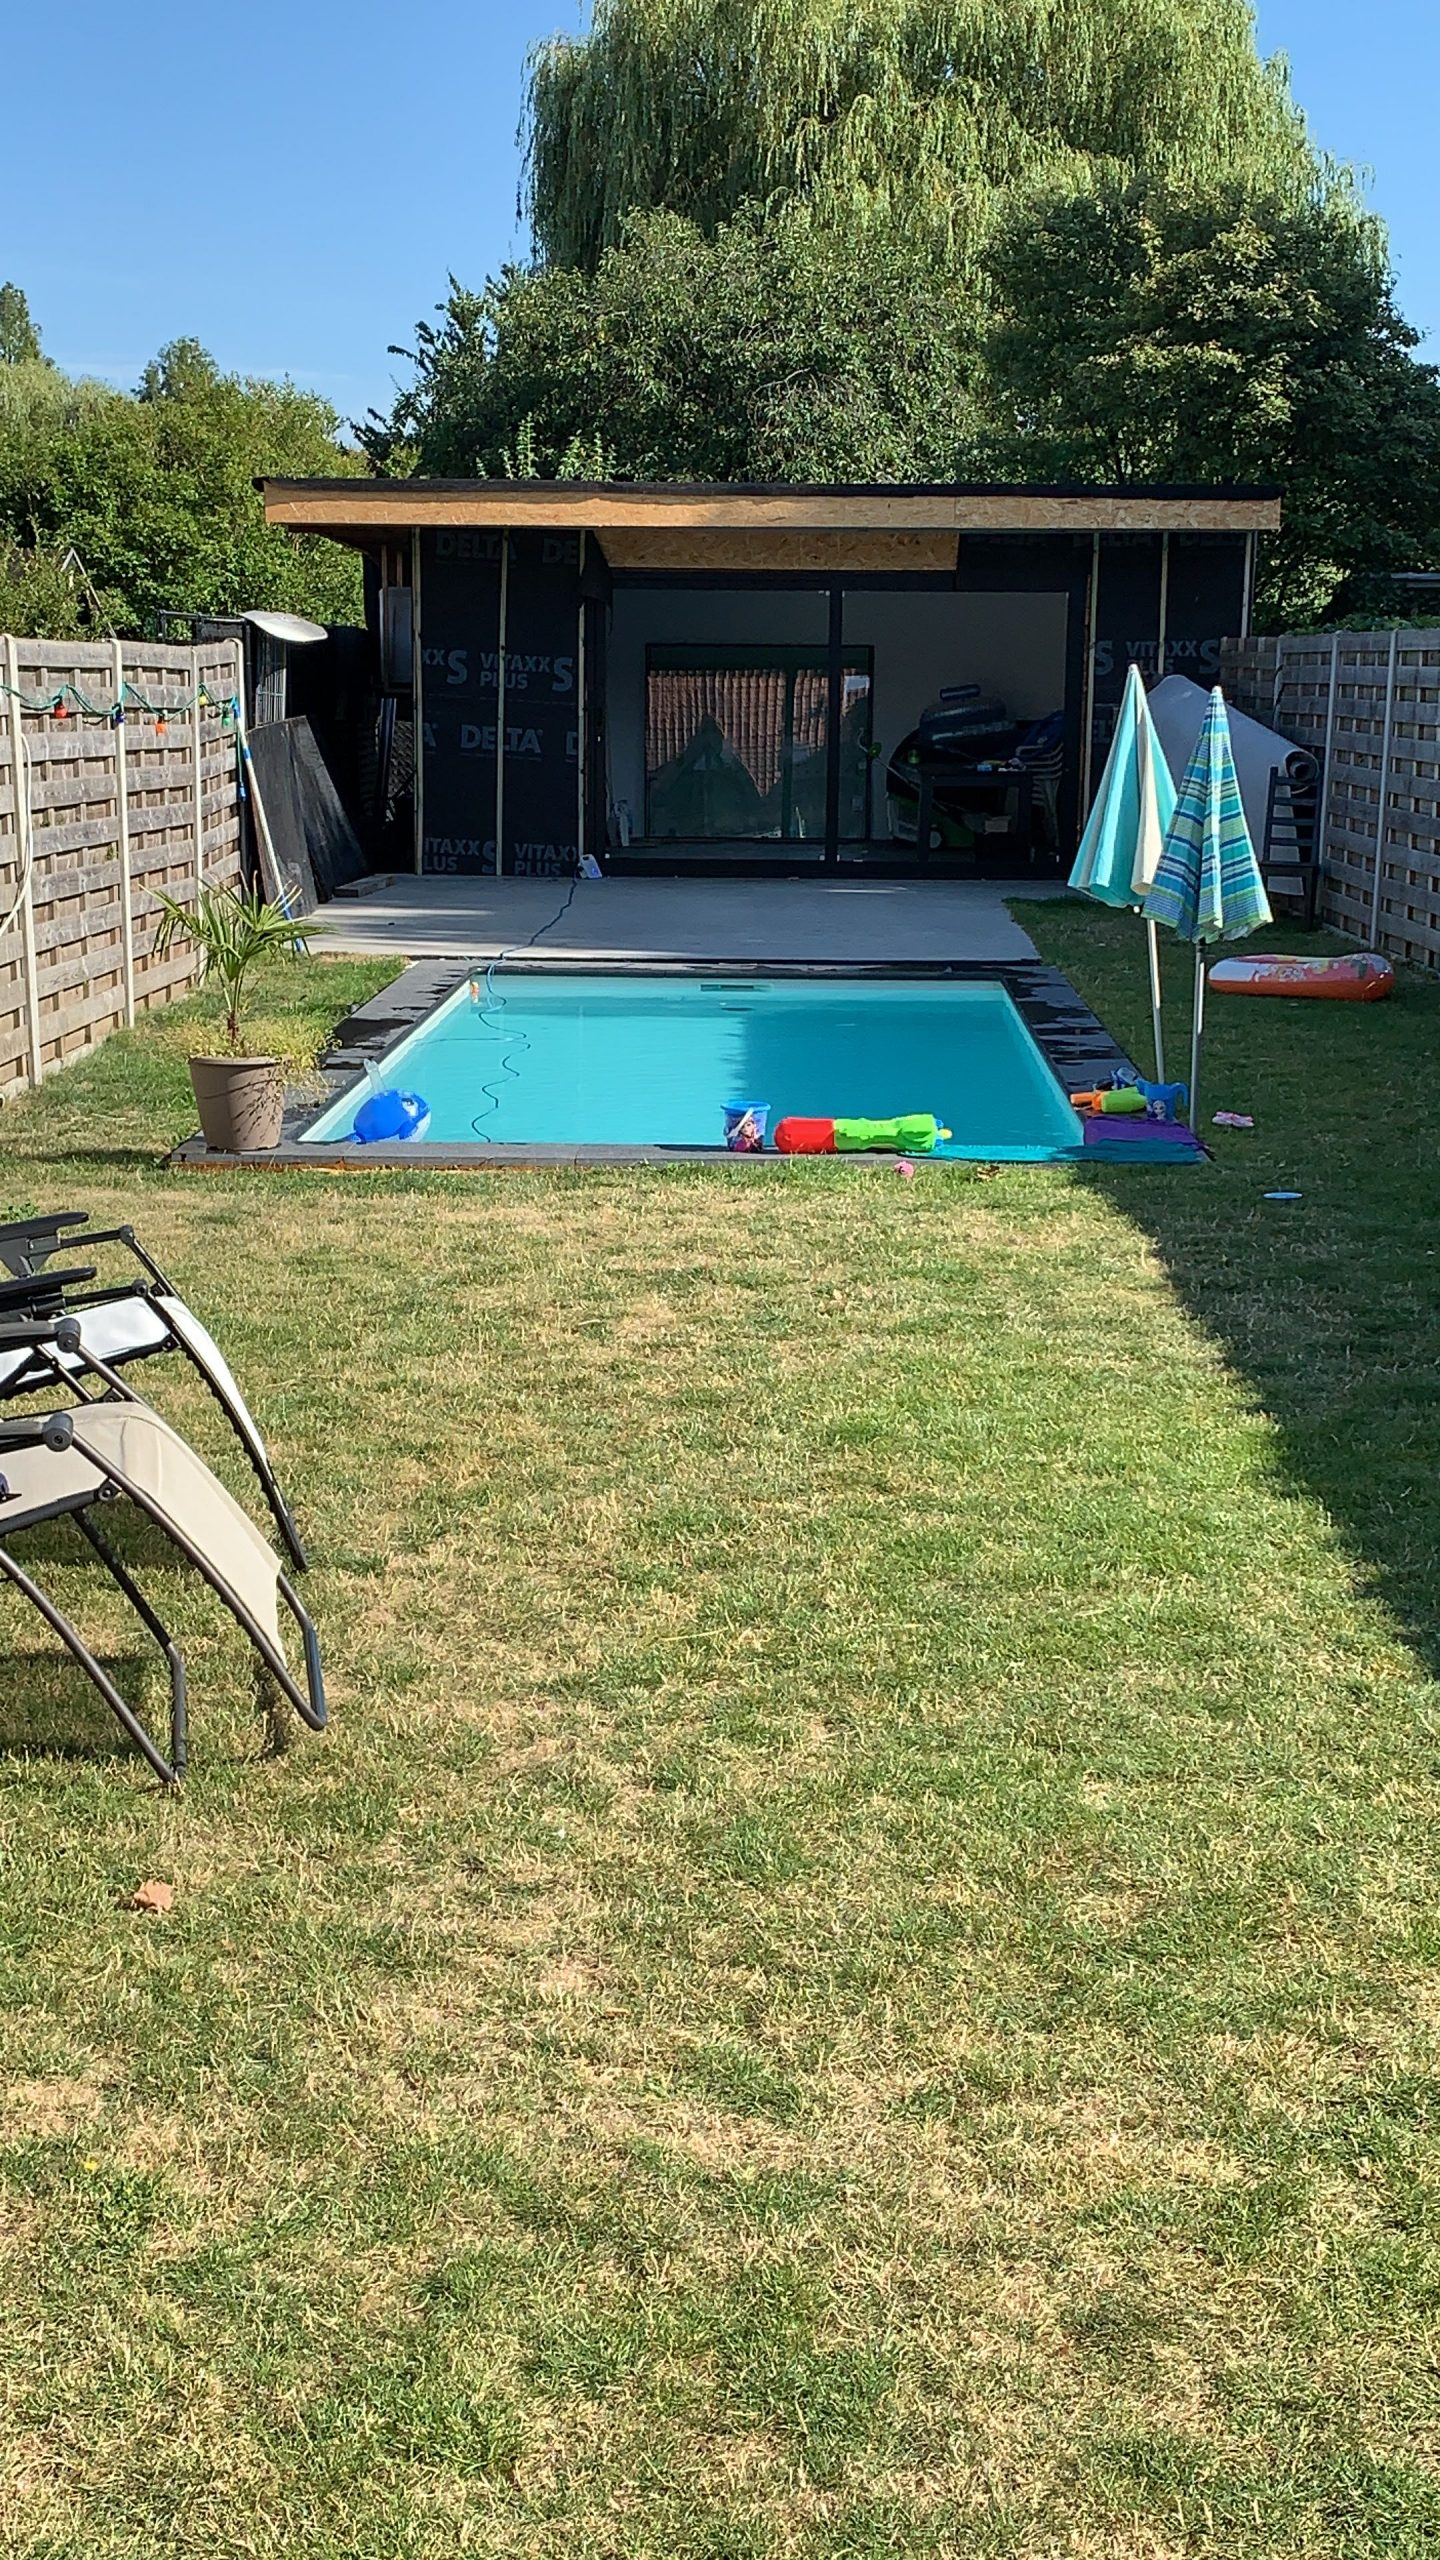 Sunny garden with pool